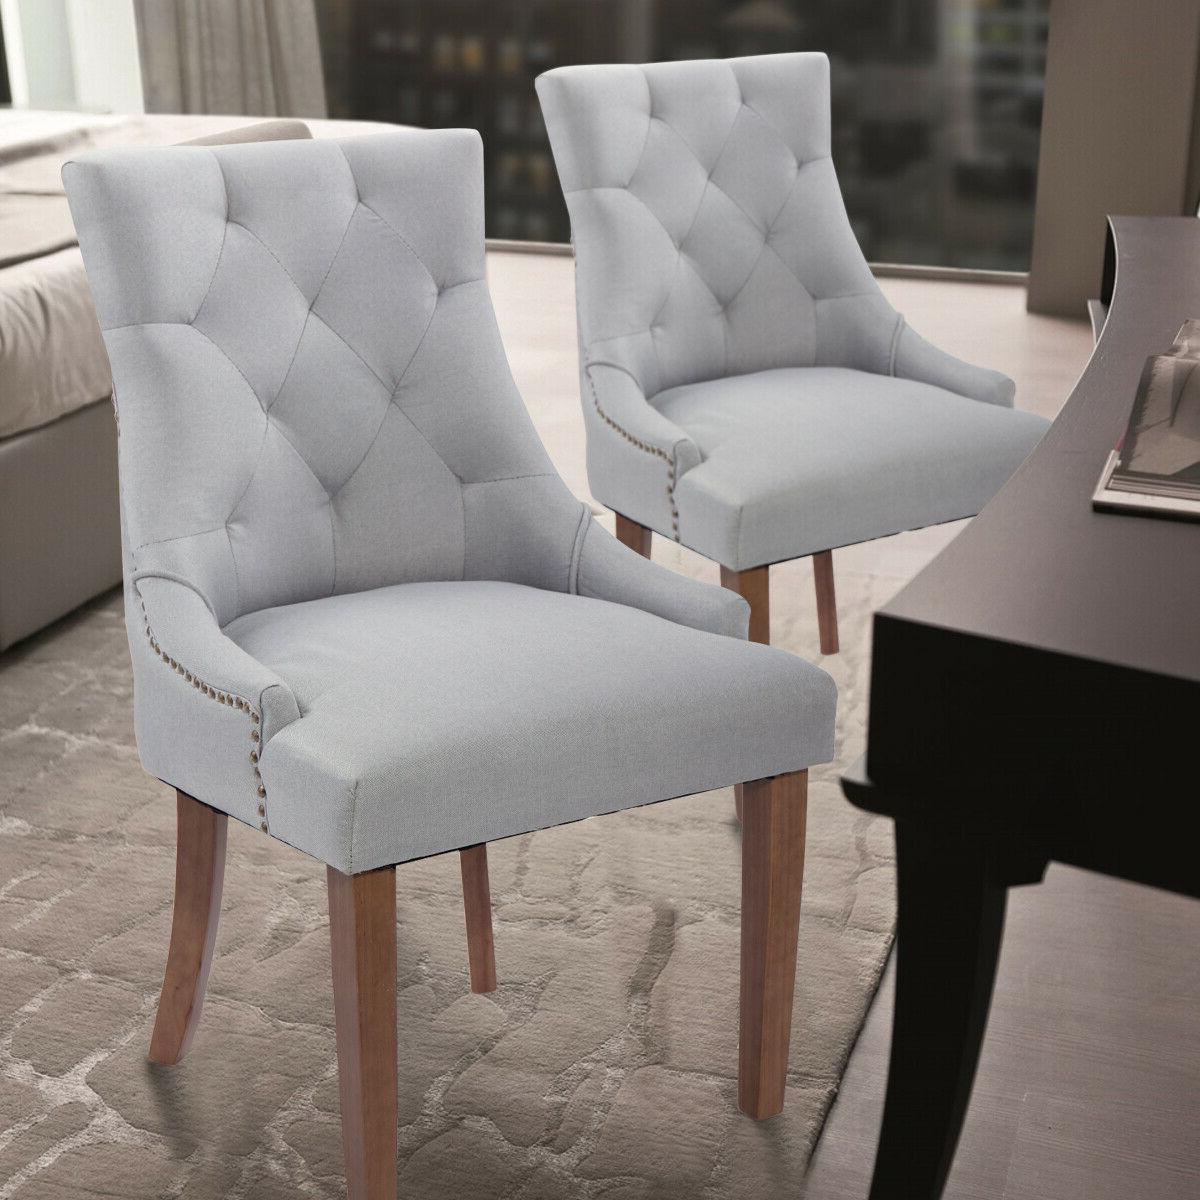 Set Dining with Rubber Wooden Legs Gray